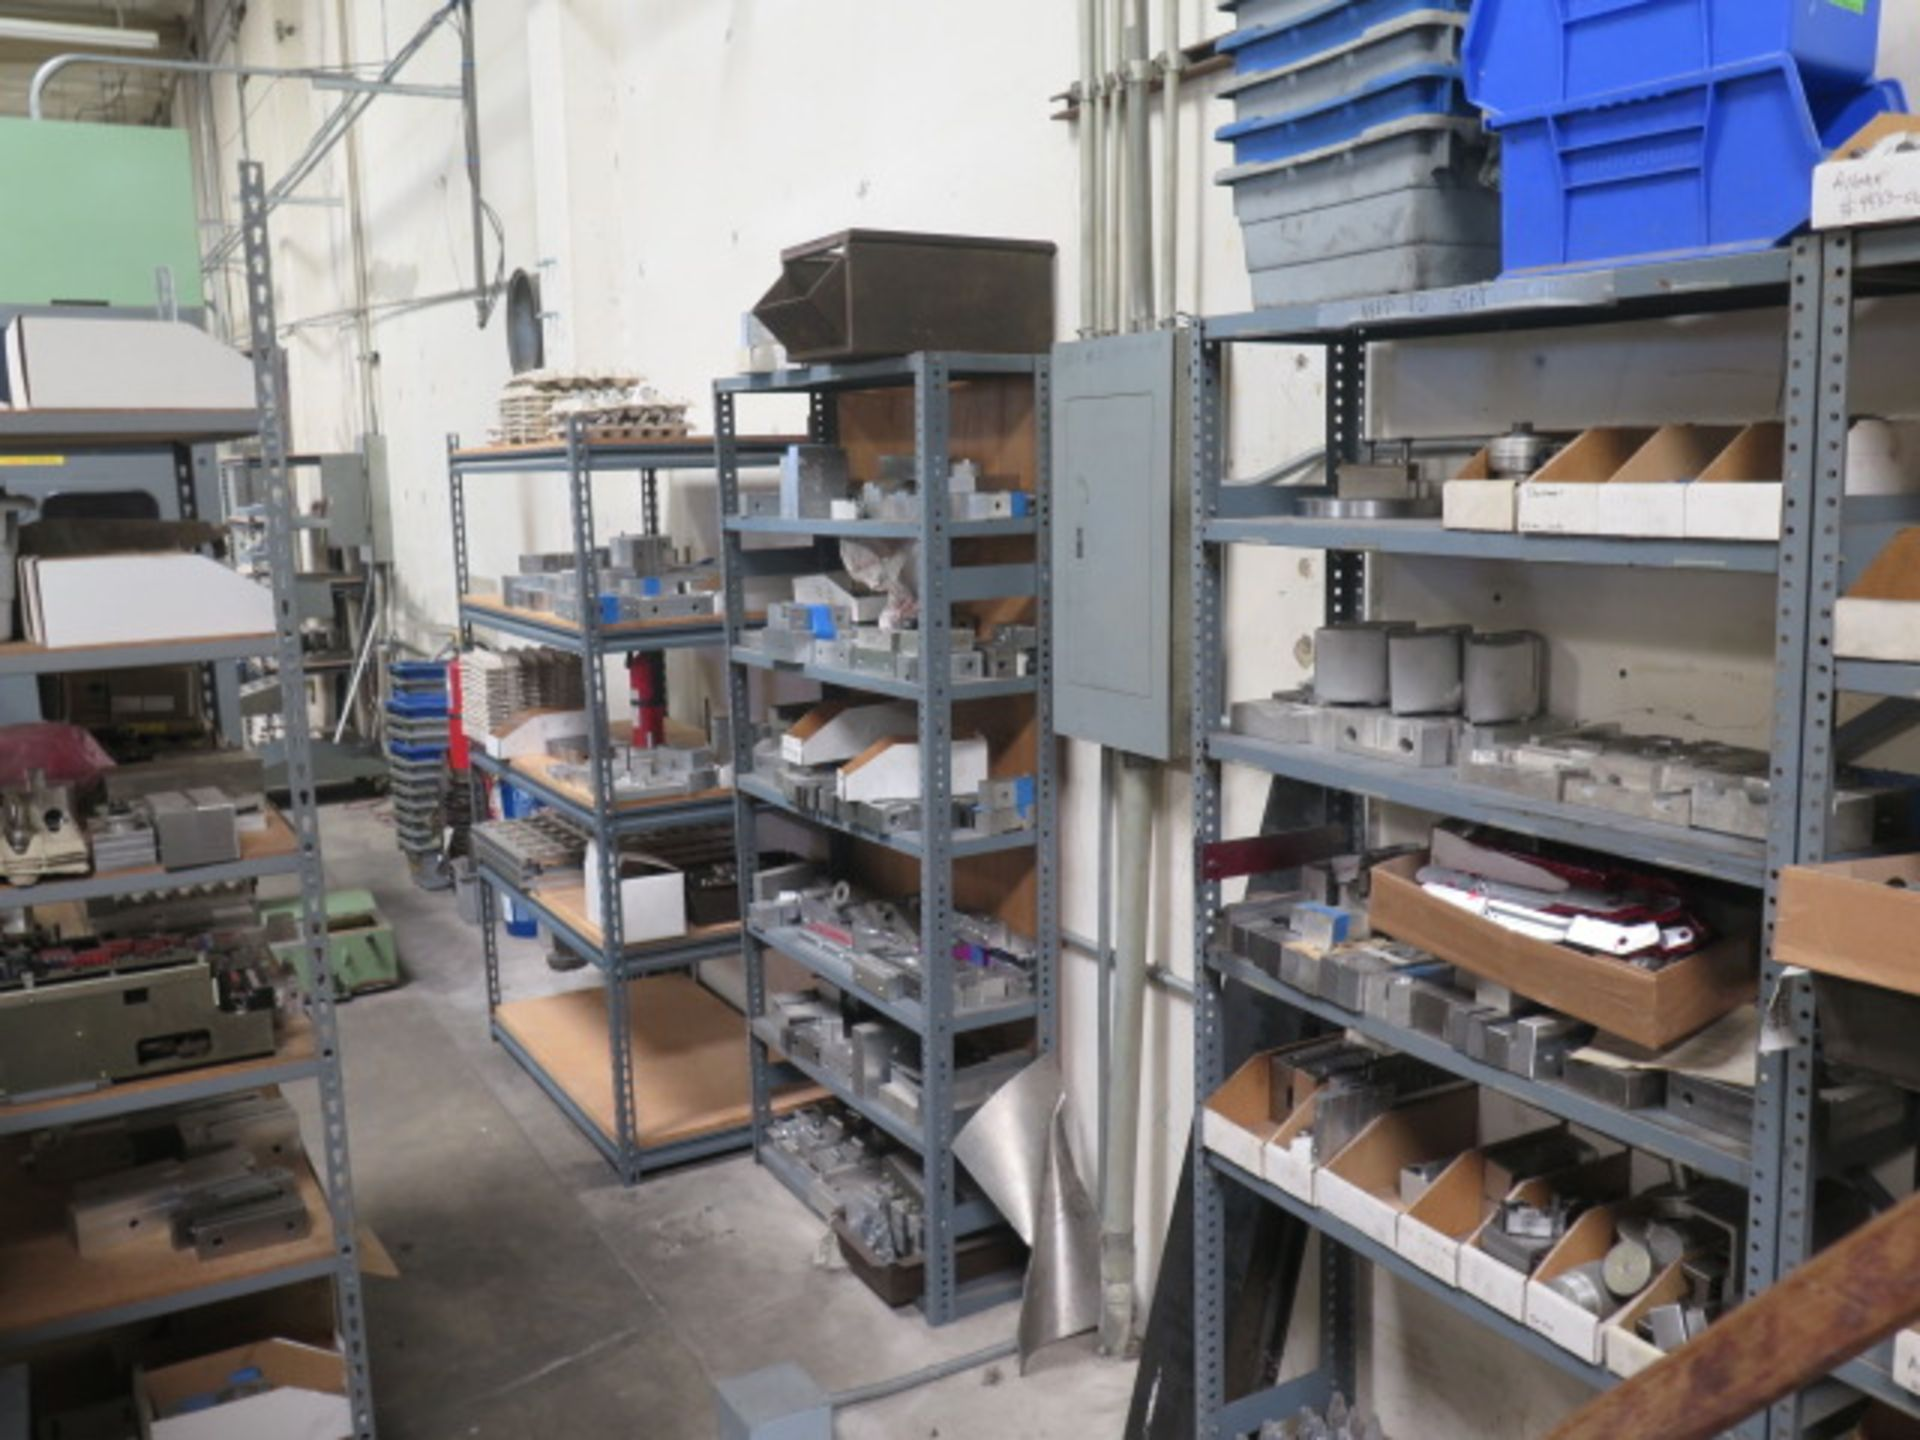 Vise Jaws, Fixtures and Misc w/ (7) Shelves (SOLD AS-IS - NO WARRANTY)